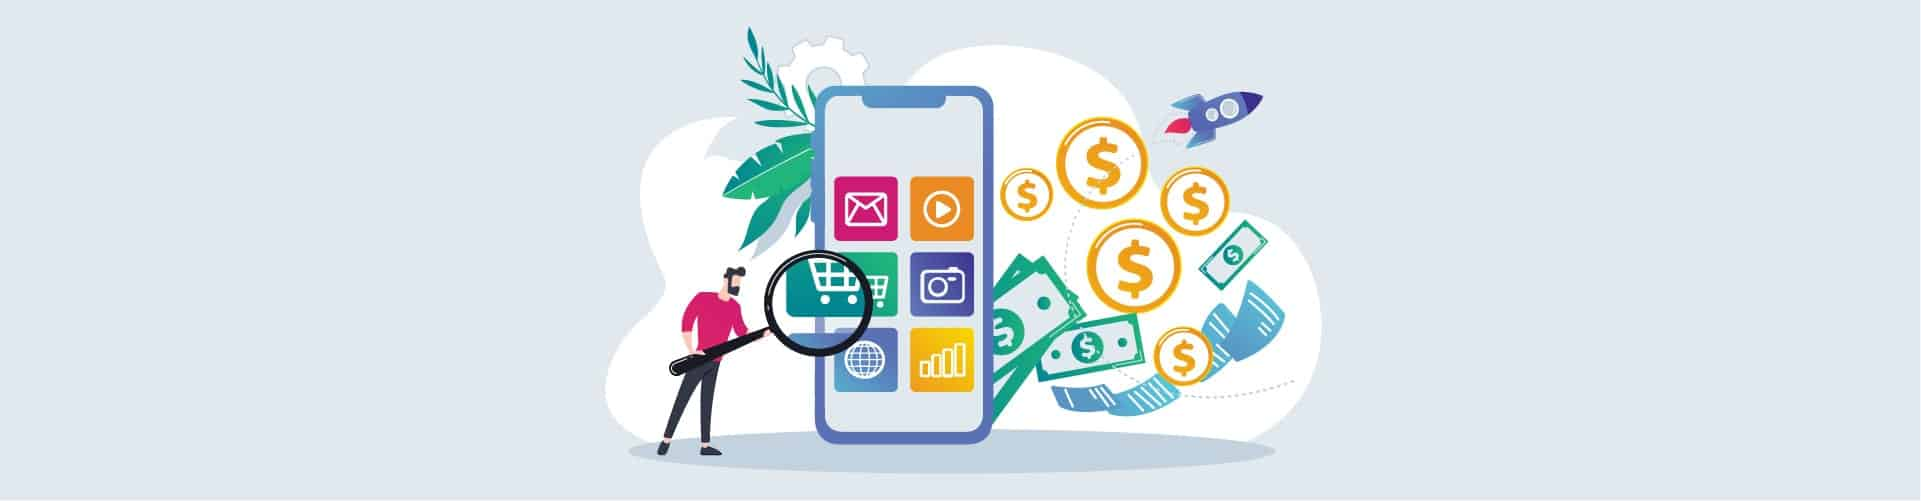 How to Monetize an App [7 Best Strategies & Examples]